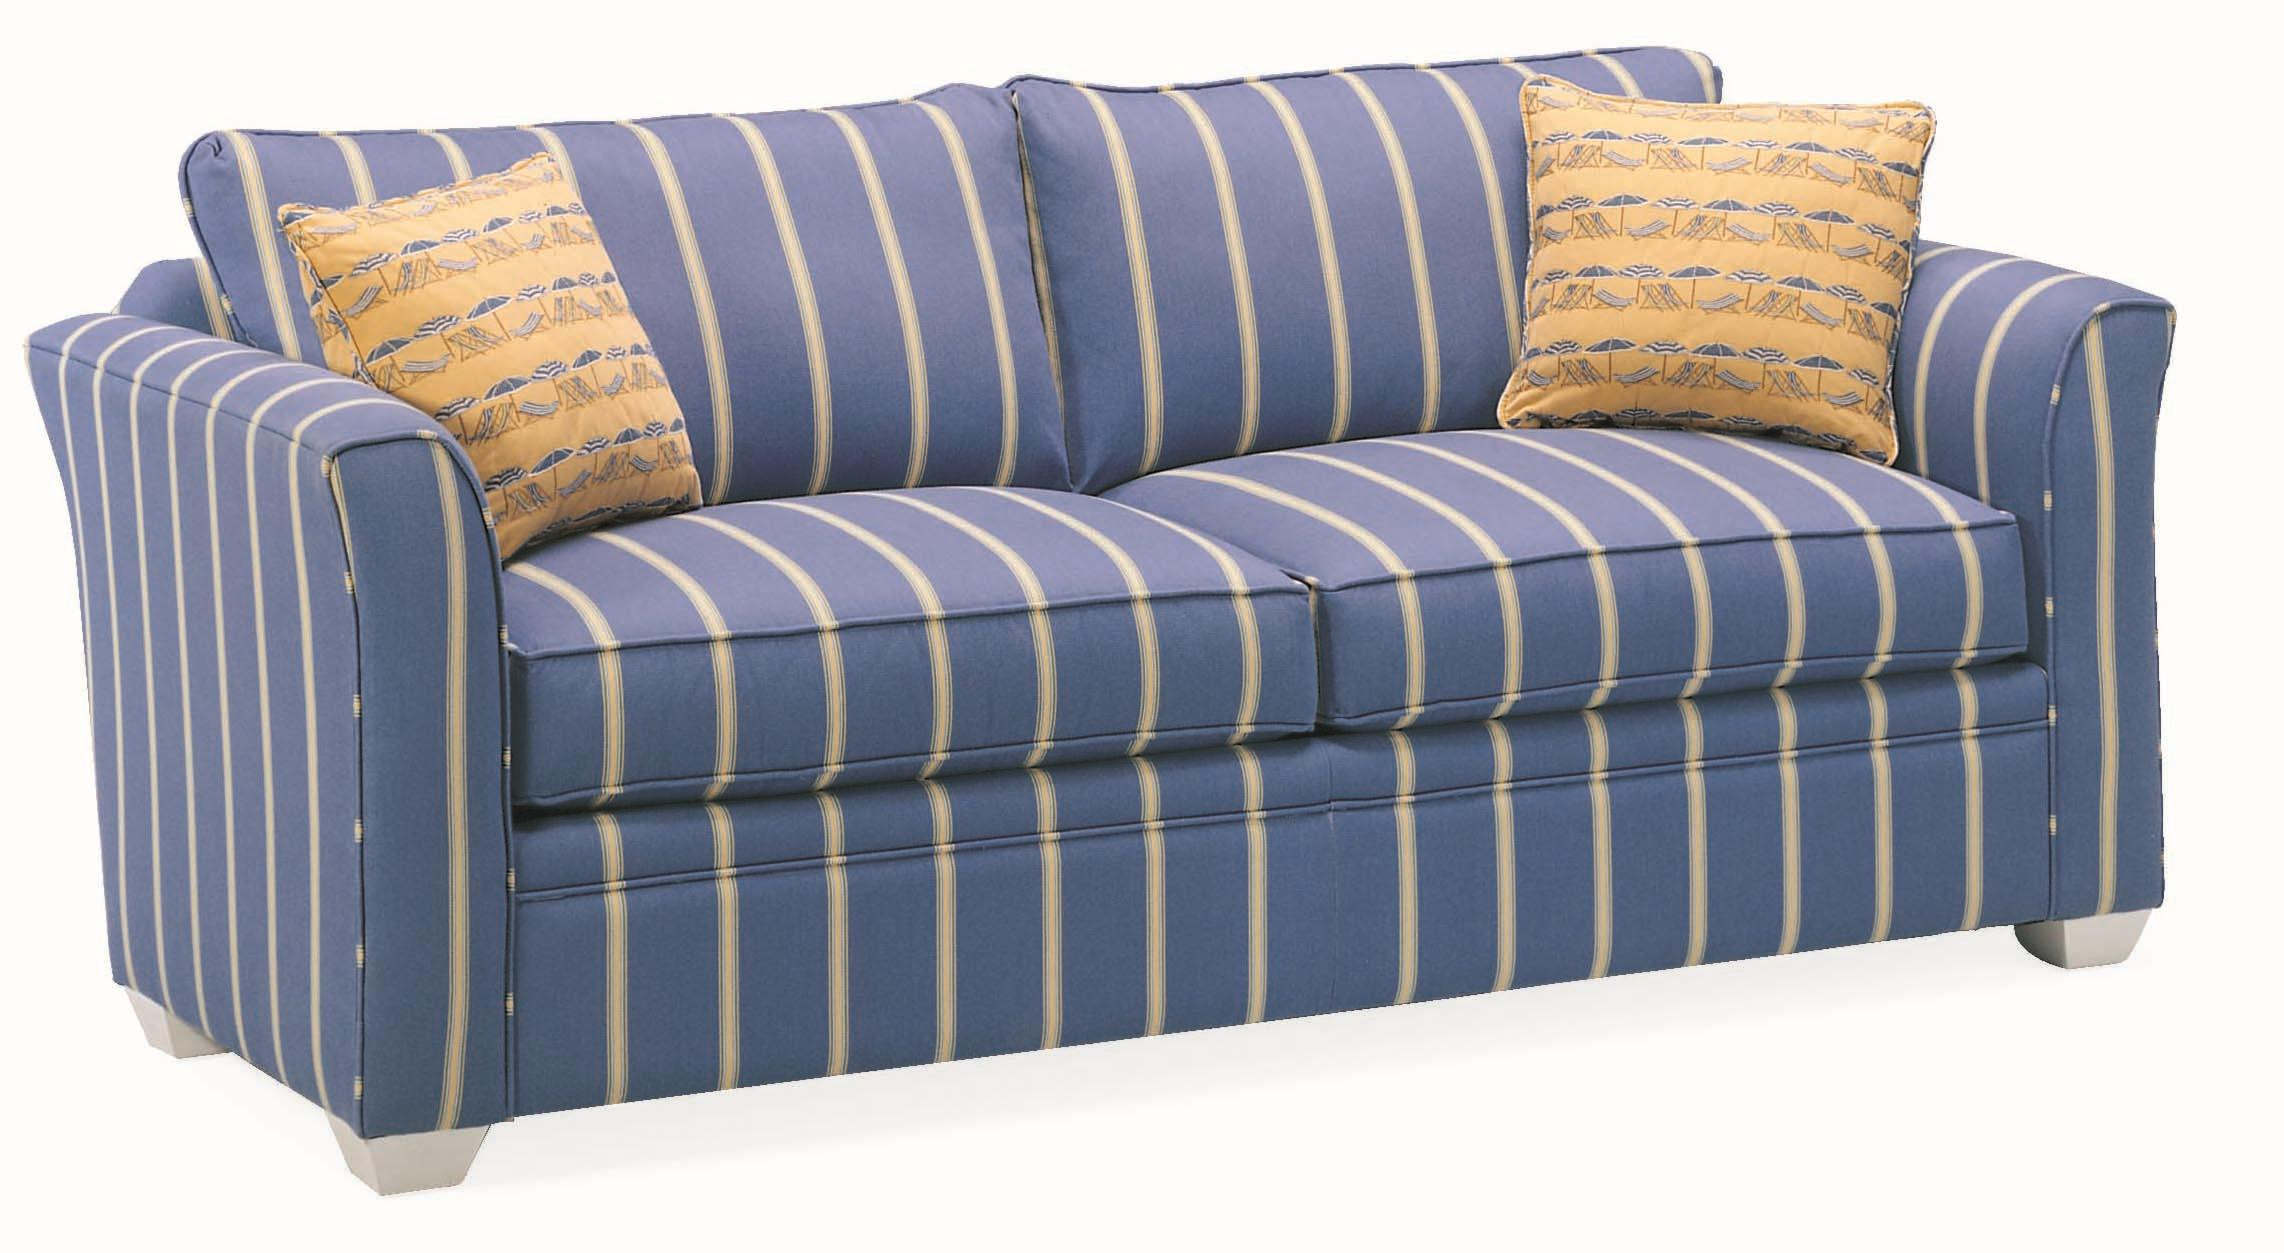 Bridgeport 2-Seater Stationary Sofa by Braxton Culler at Alison Craig Home Furnishings